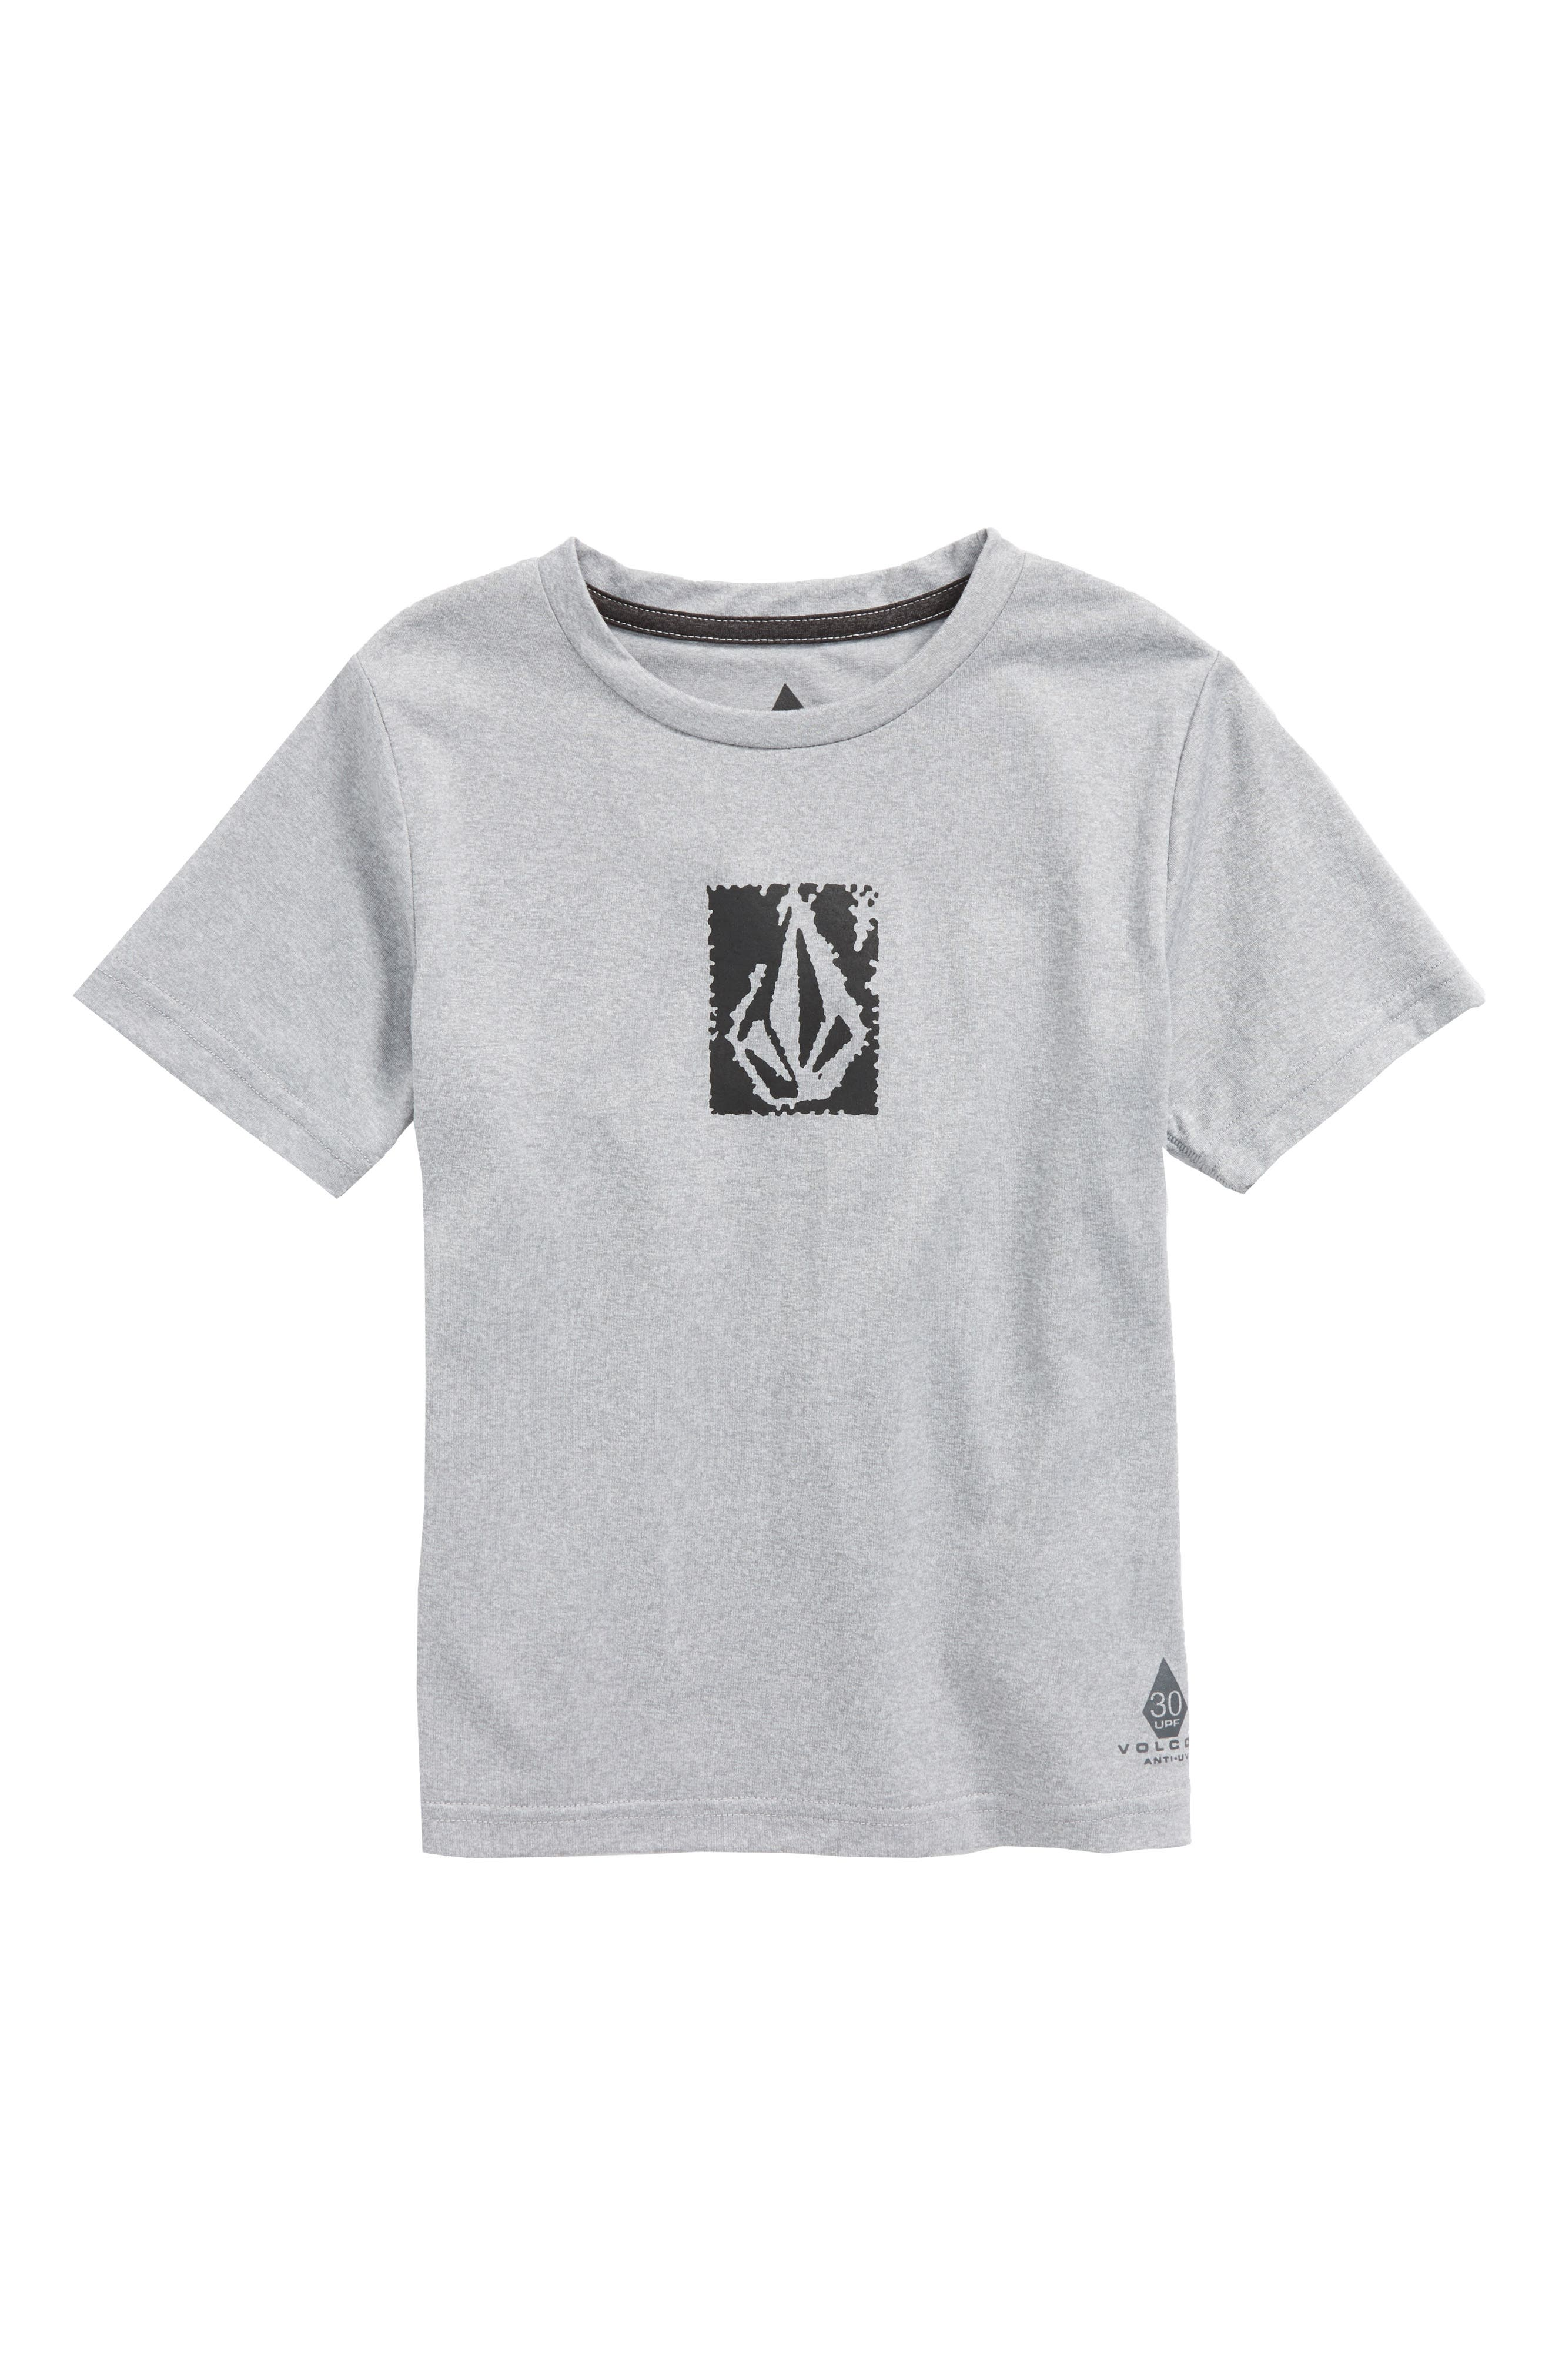 Lido Graphic Logo T-Shirt,                         Main,                         color, 020